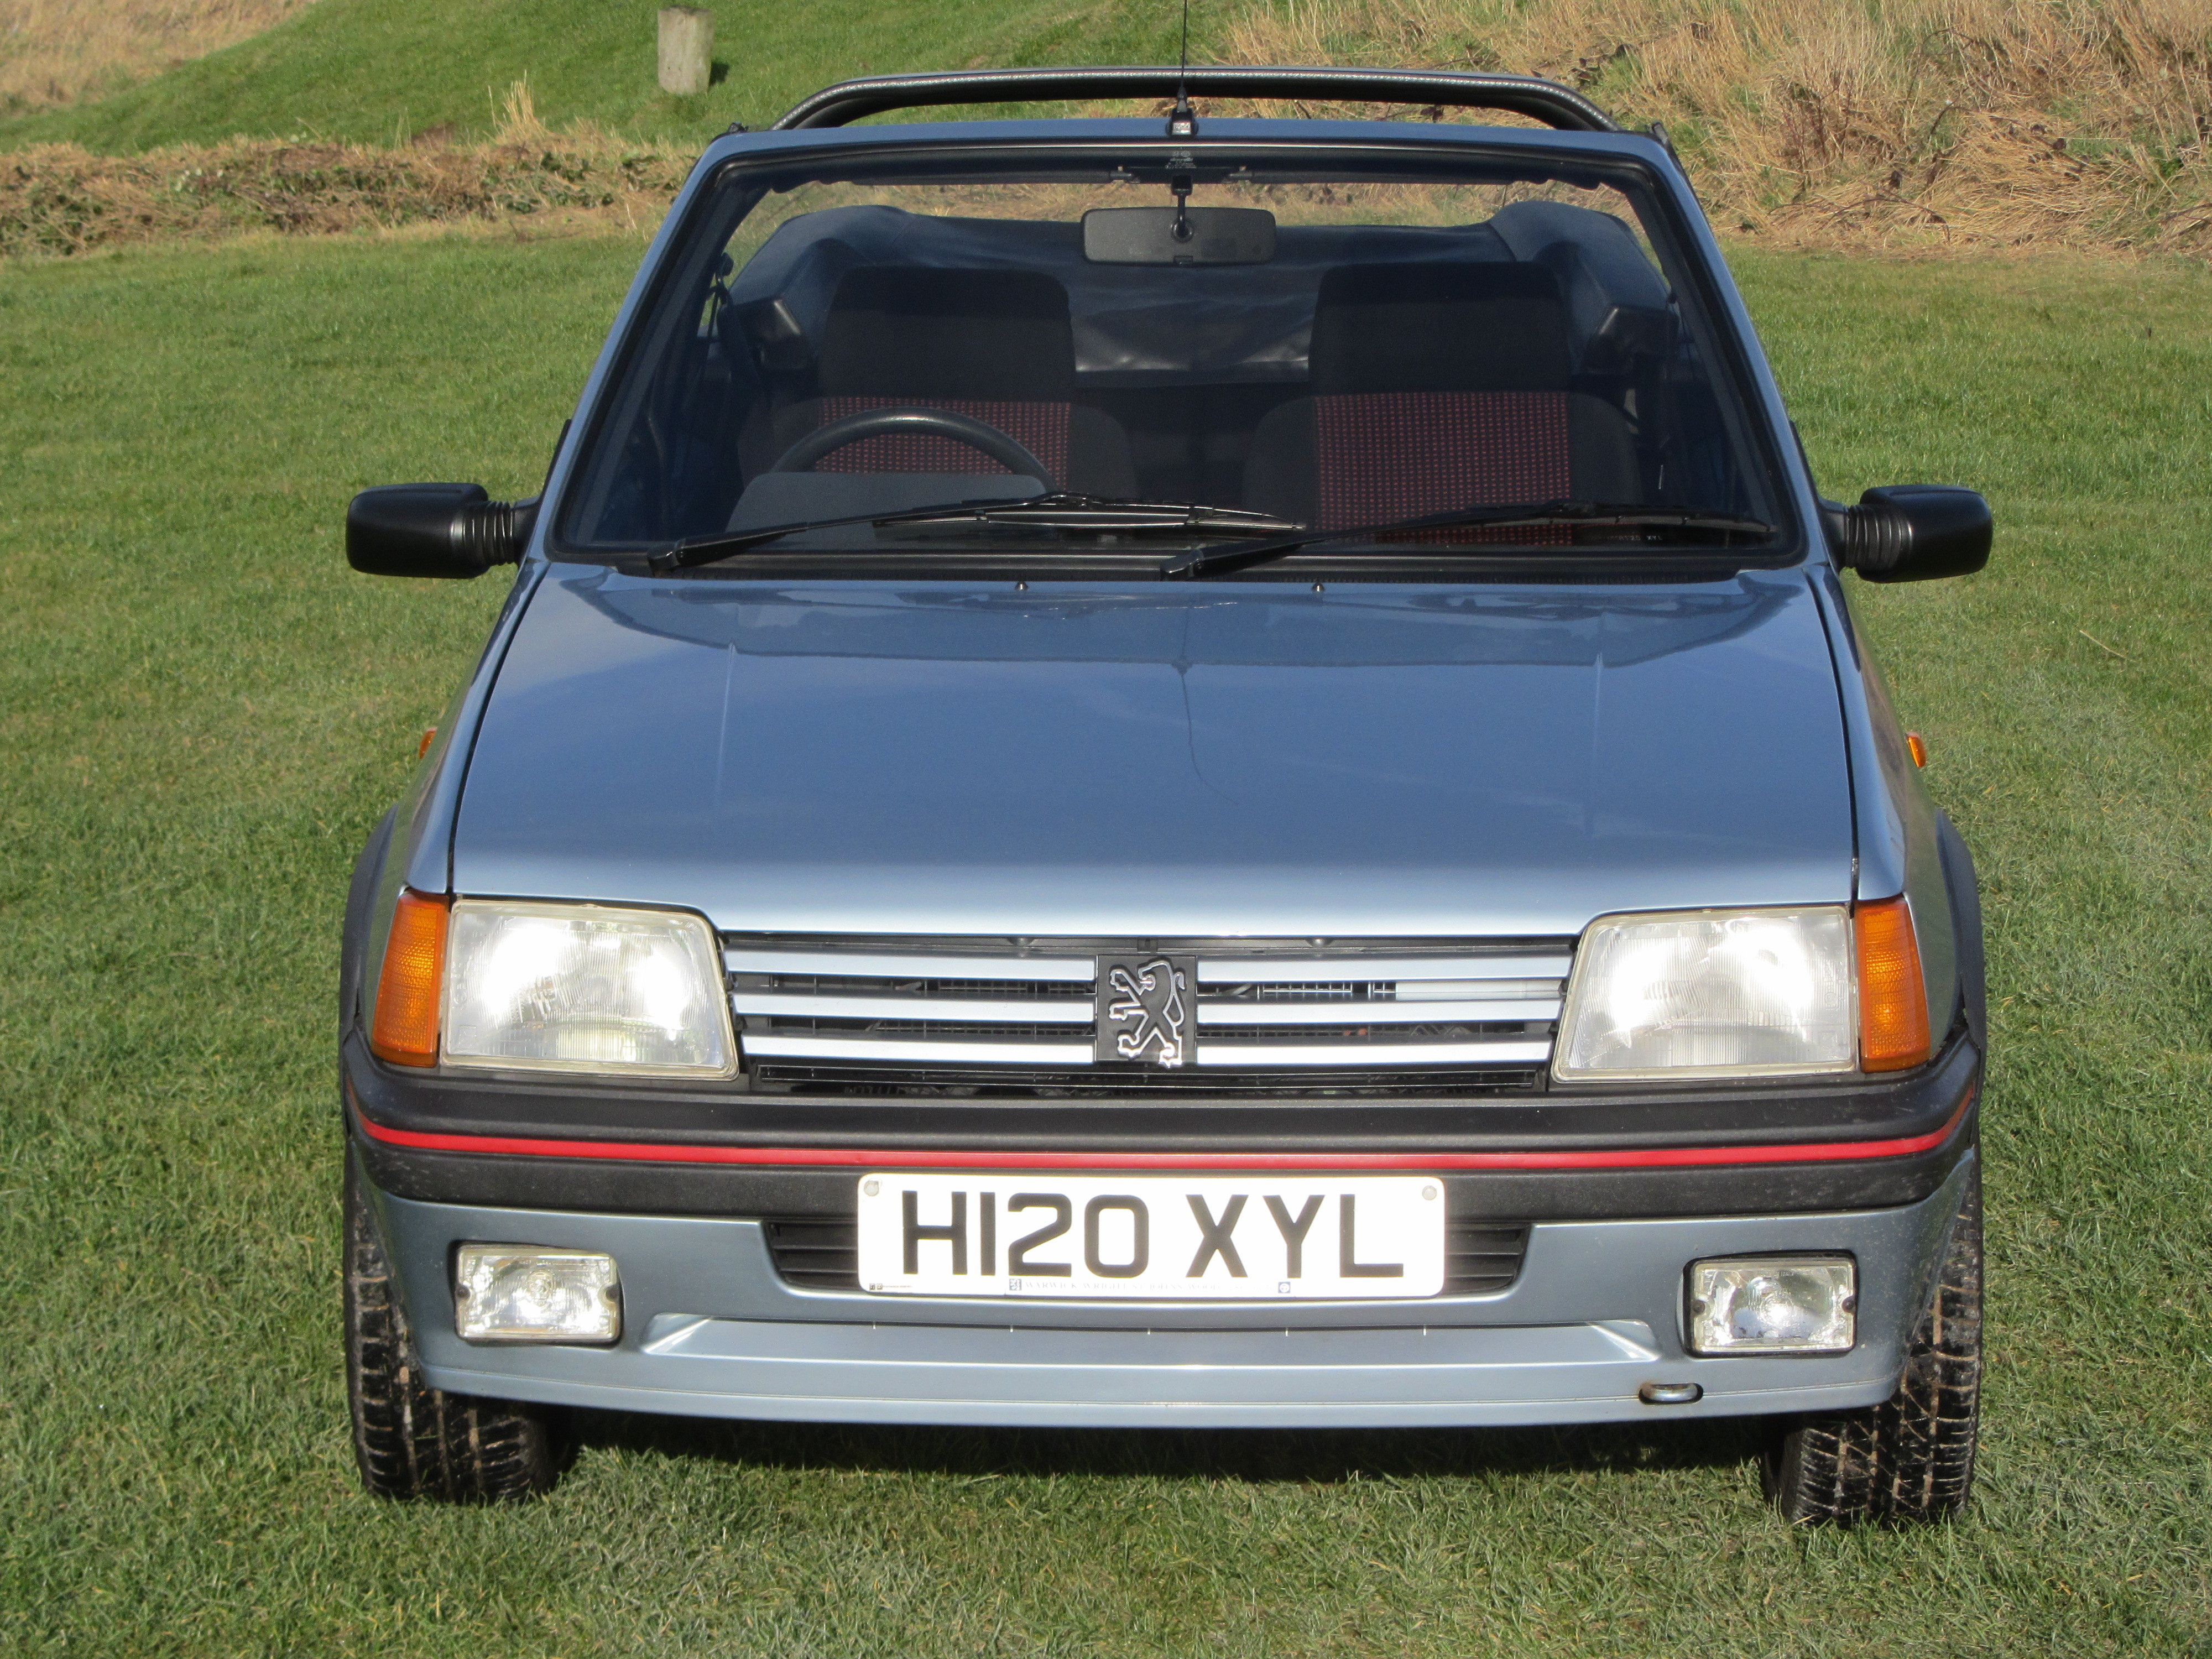 Peugeot 205 CTi 1.6 one owner, very low mileage for sale